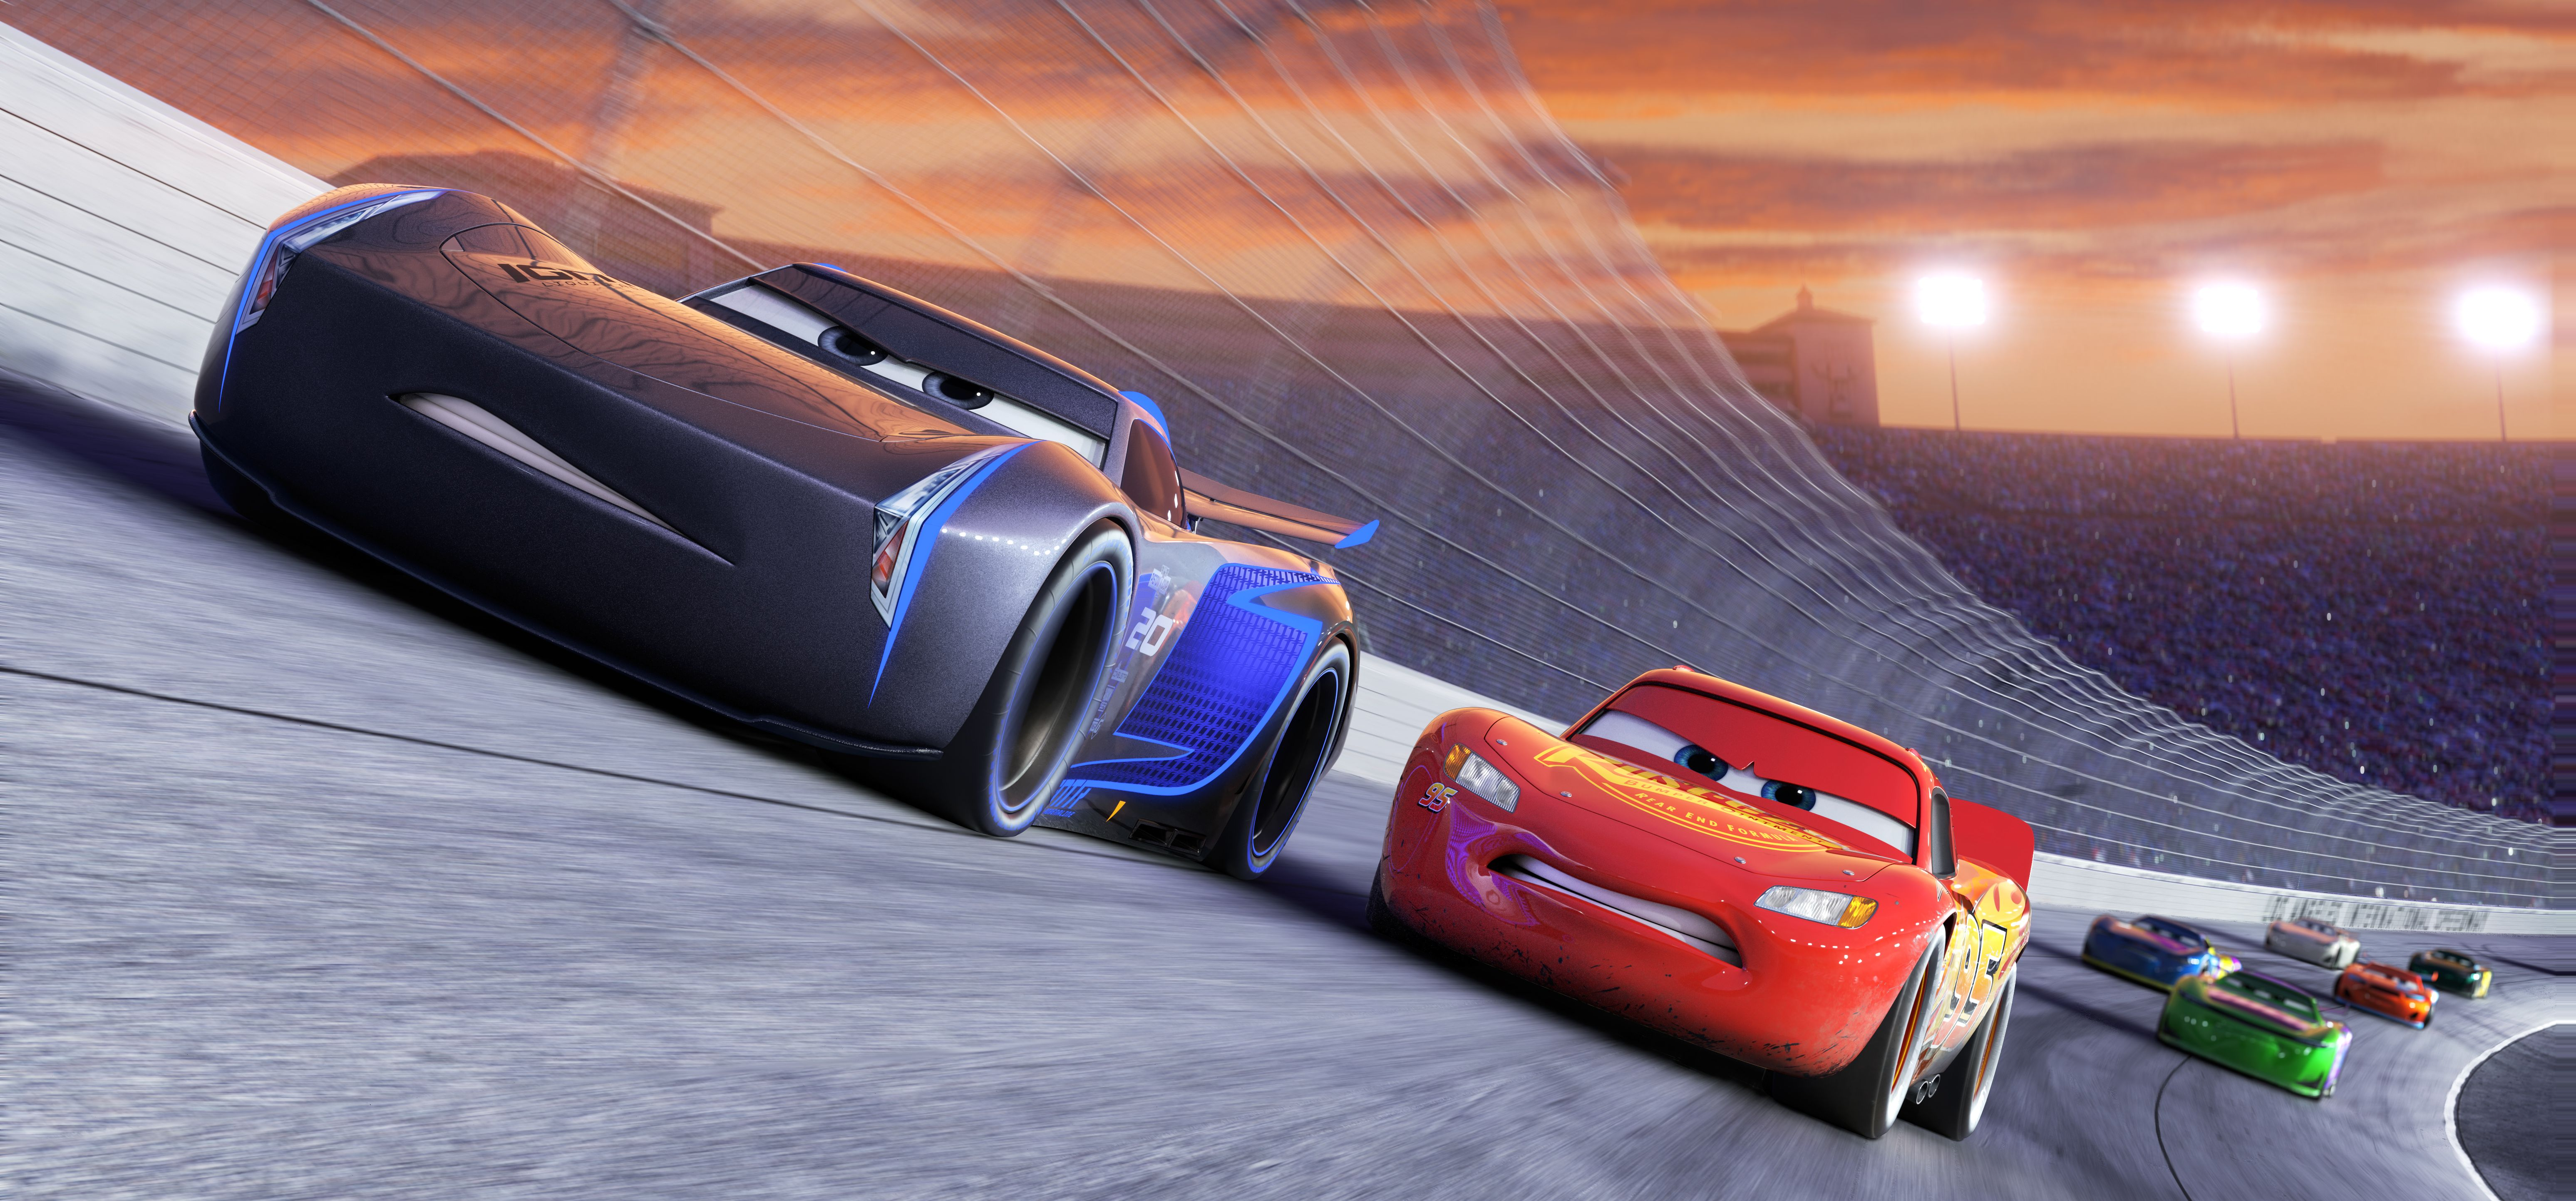 Cars Review Pixar S Latest Finds A Comfortable Speed Collider